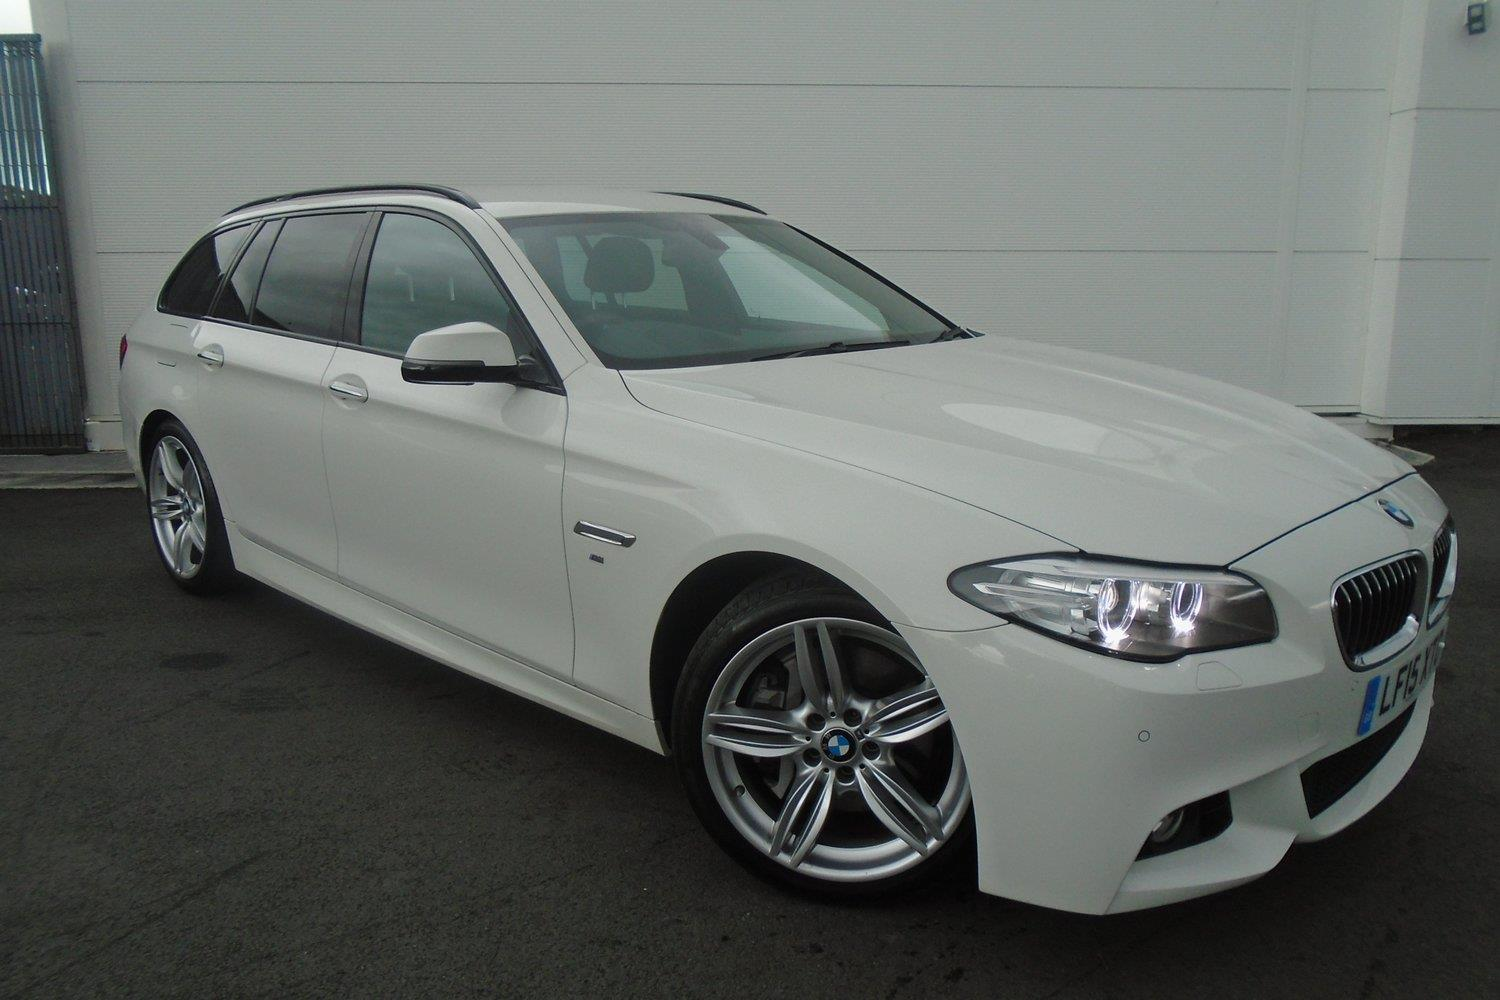 BMW 5 Series Touring LF15XTO - Image 8